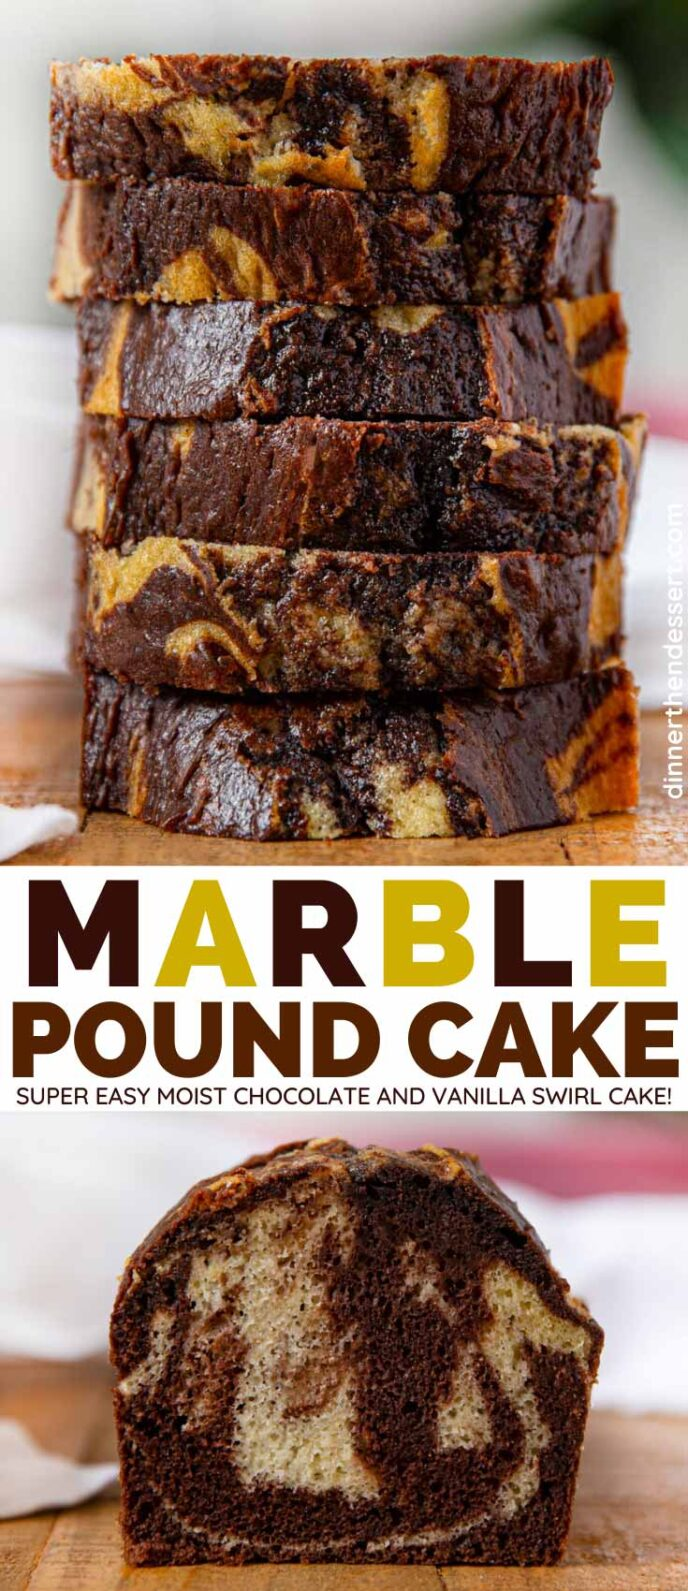 Marble Pound Cake collage